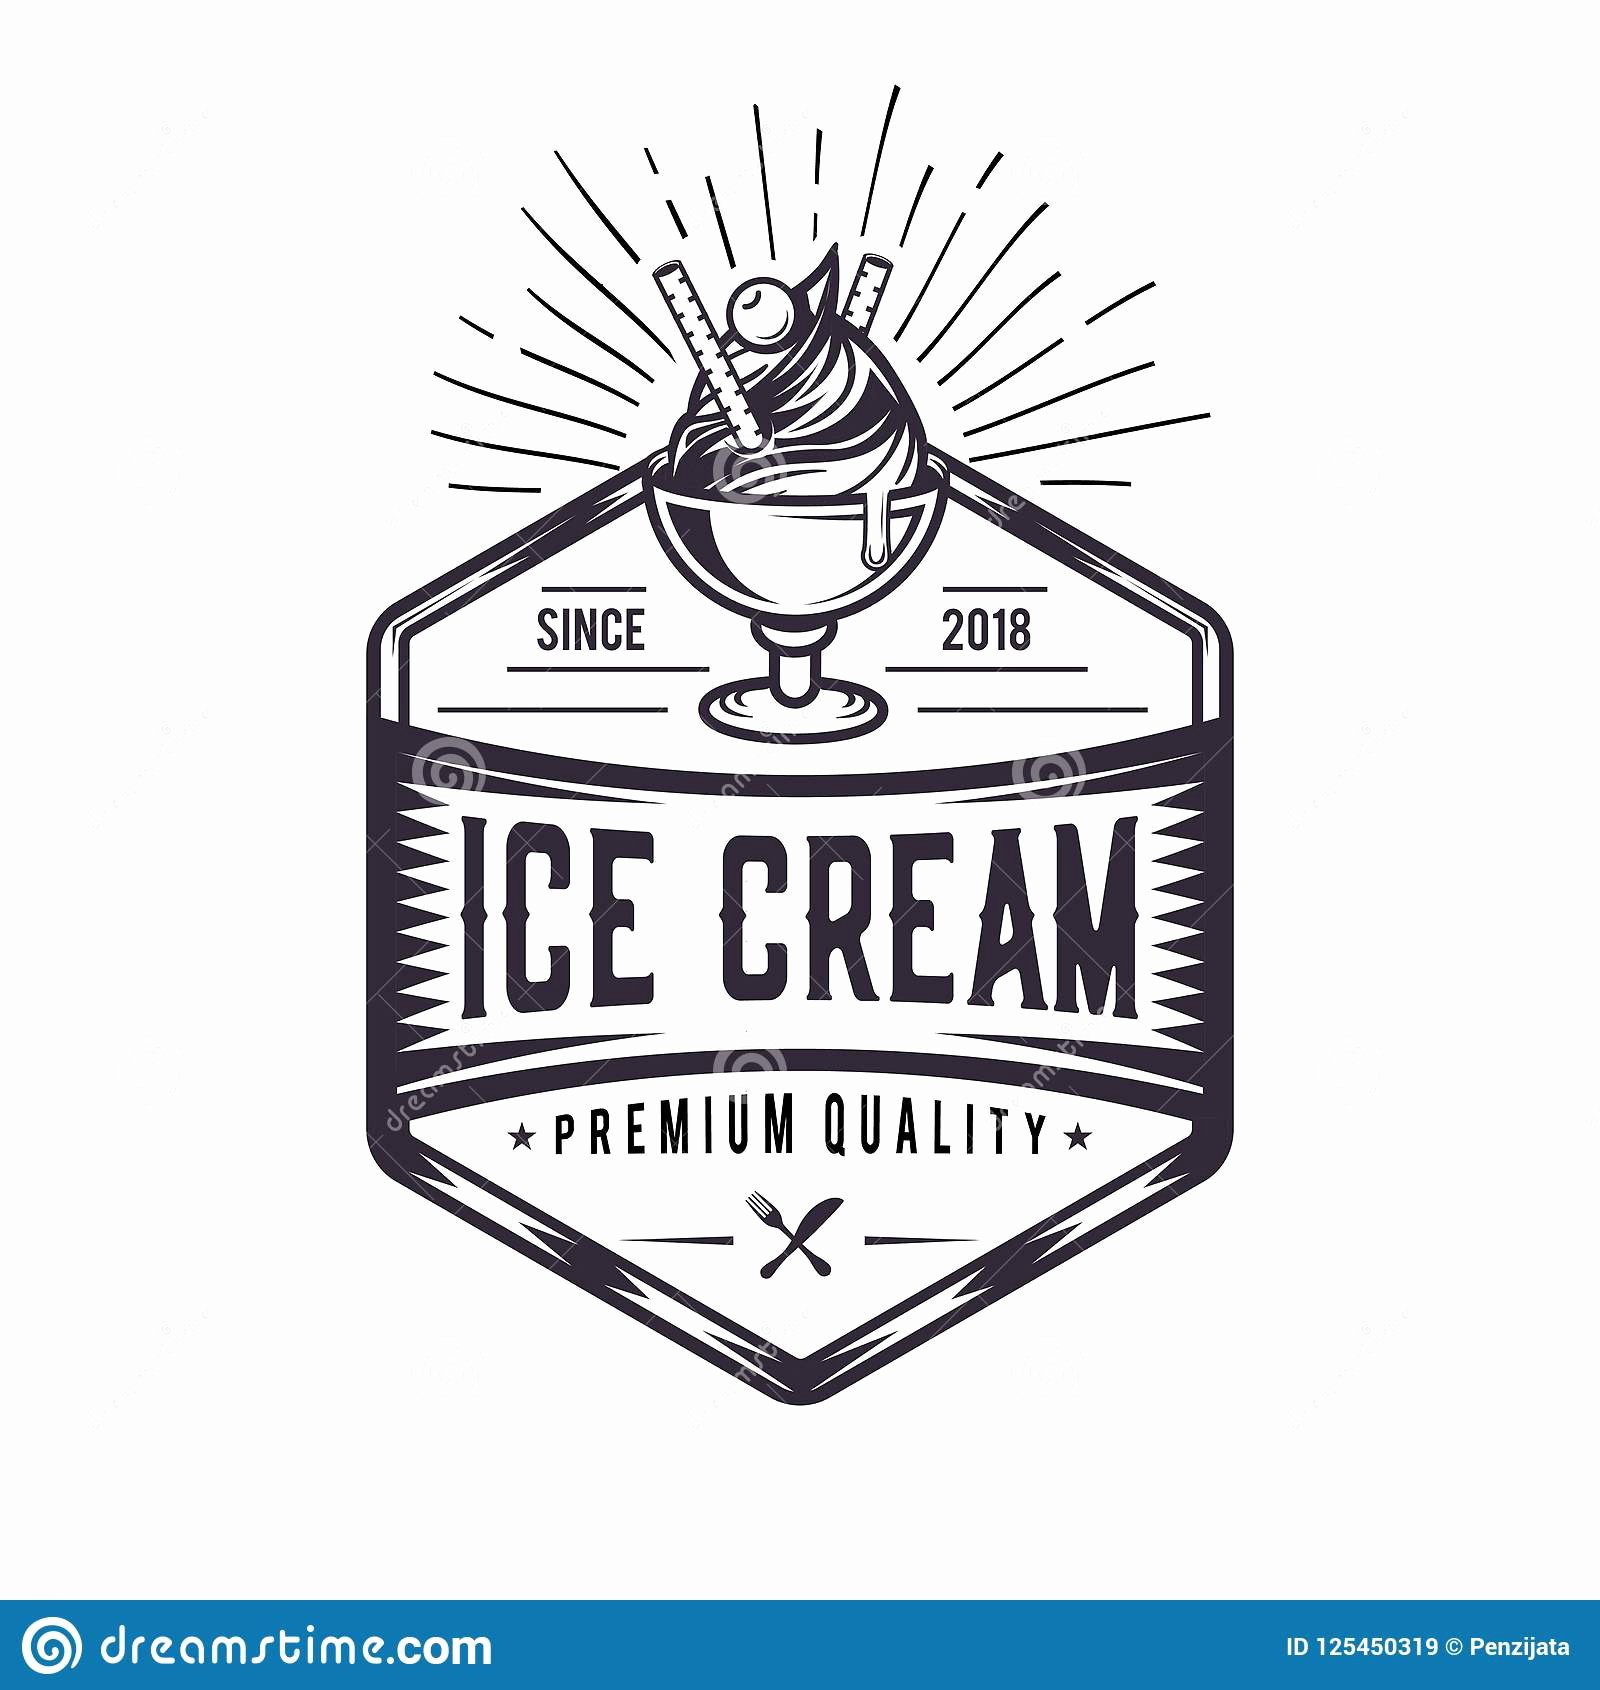 Ice Cream Shop Logo Fresh Retro Ice Cream Logo Vintage Emblem Logo Illustration